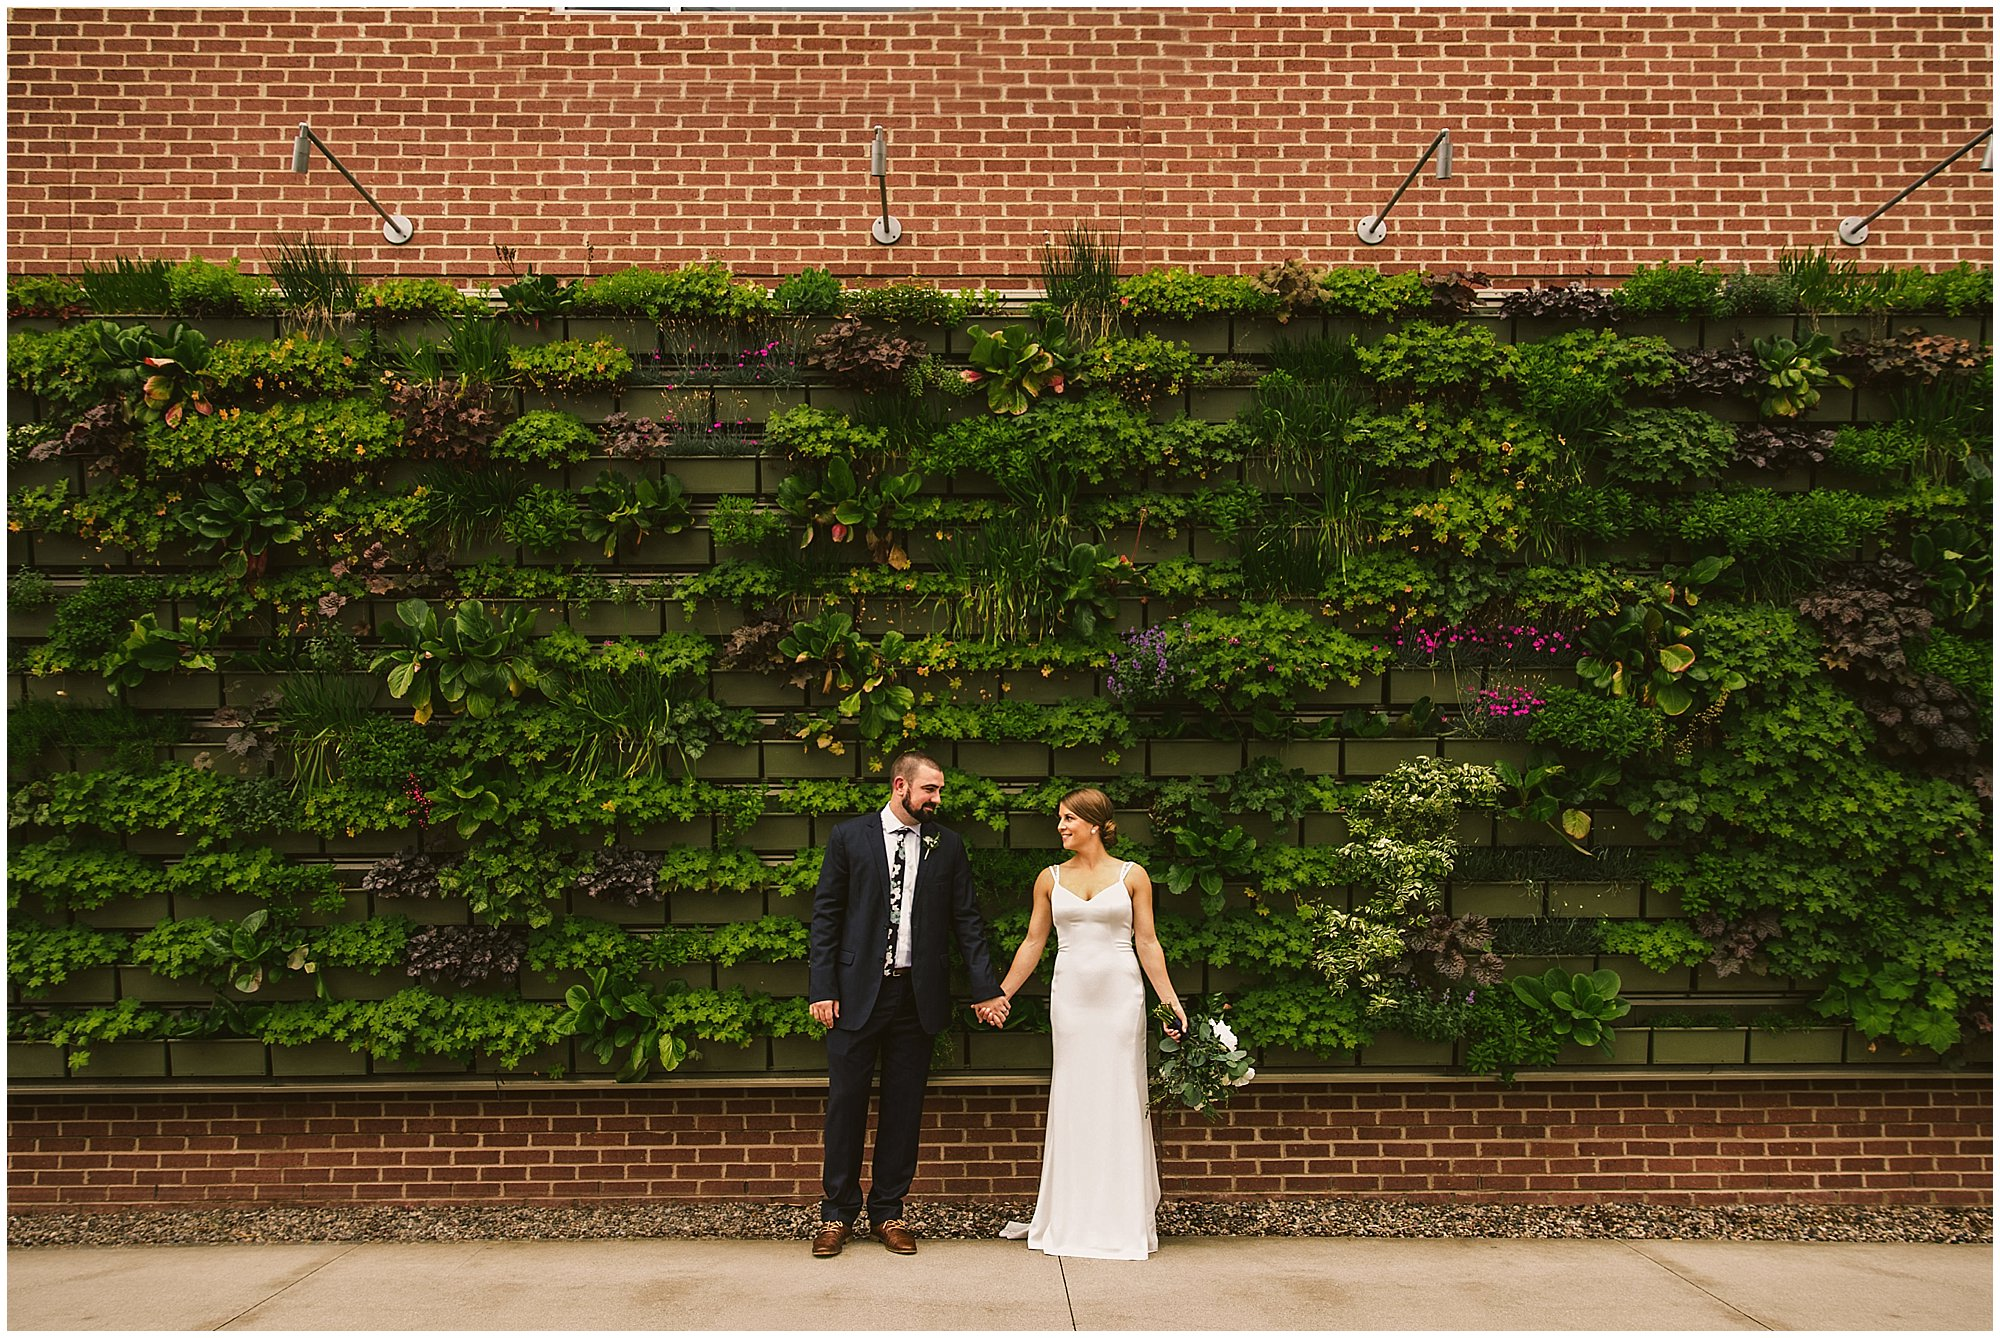 Grand Rapids Michigan Wedding Photography by Adventure Photo Stories